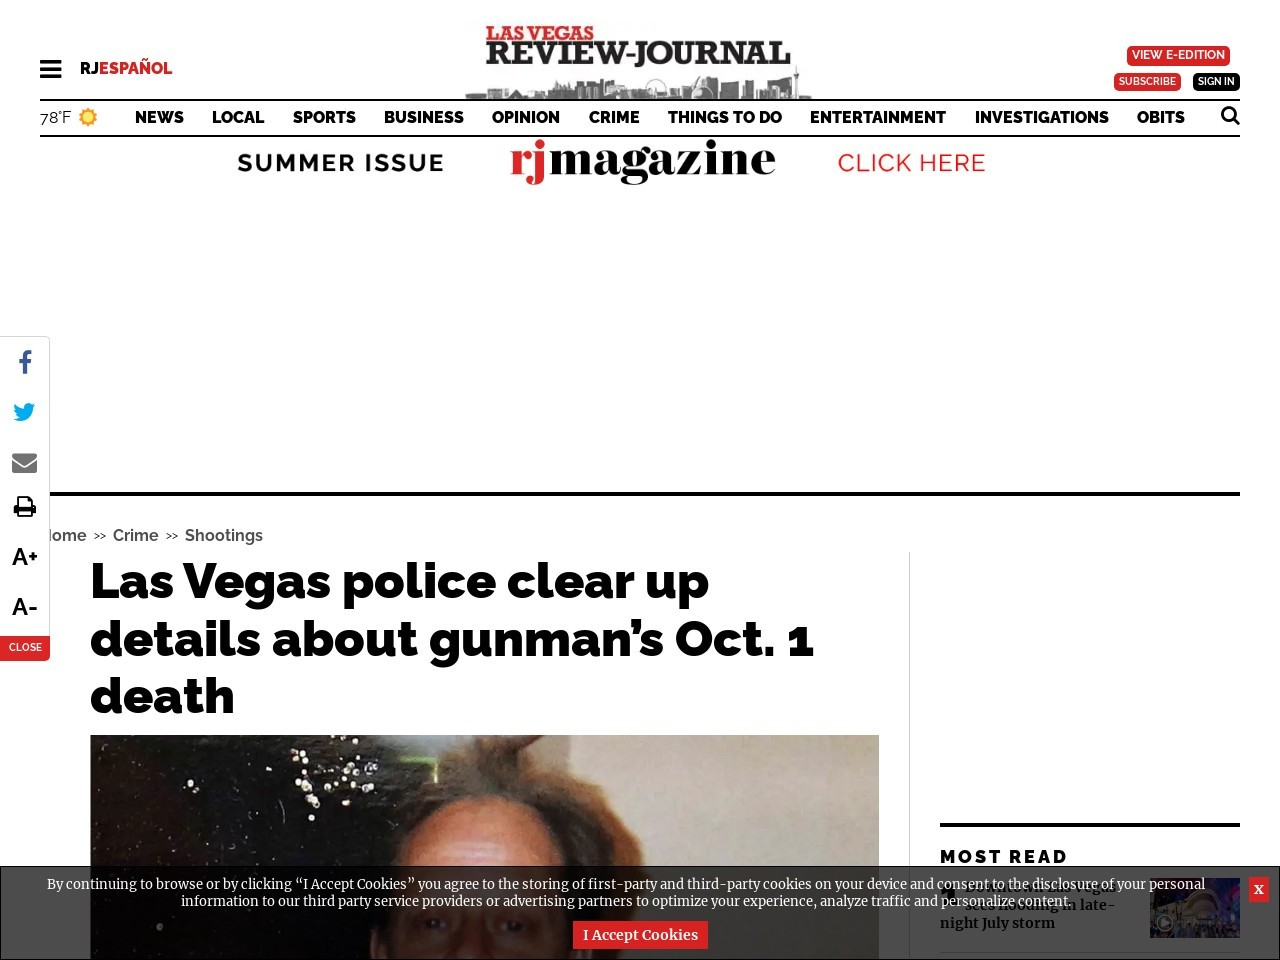 Las Vegas police clear up details about gunman's Oct. 1 death